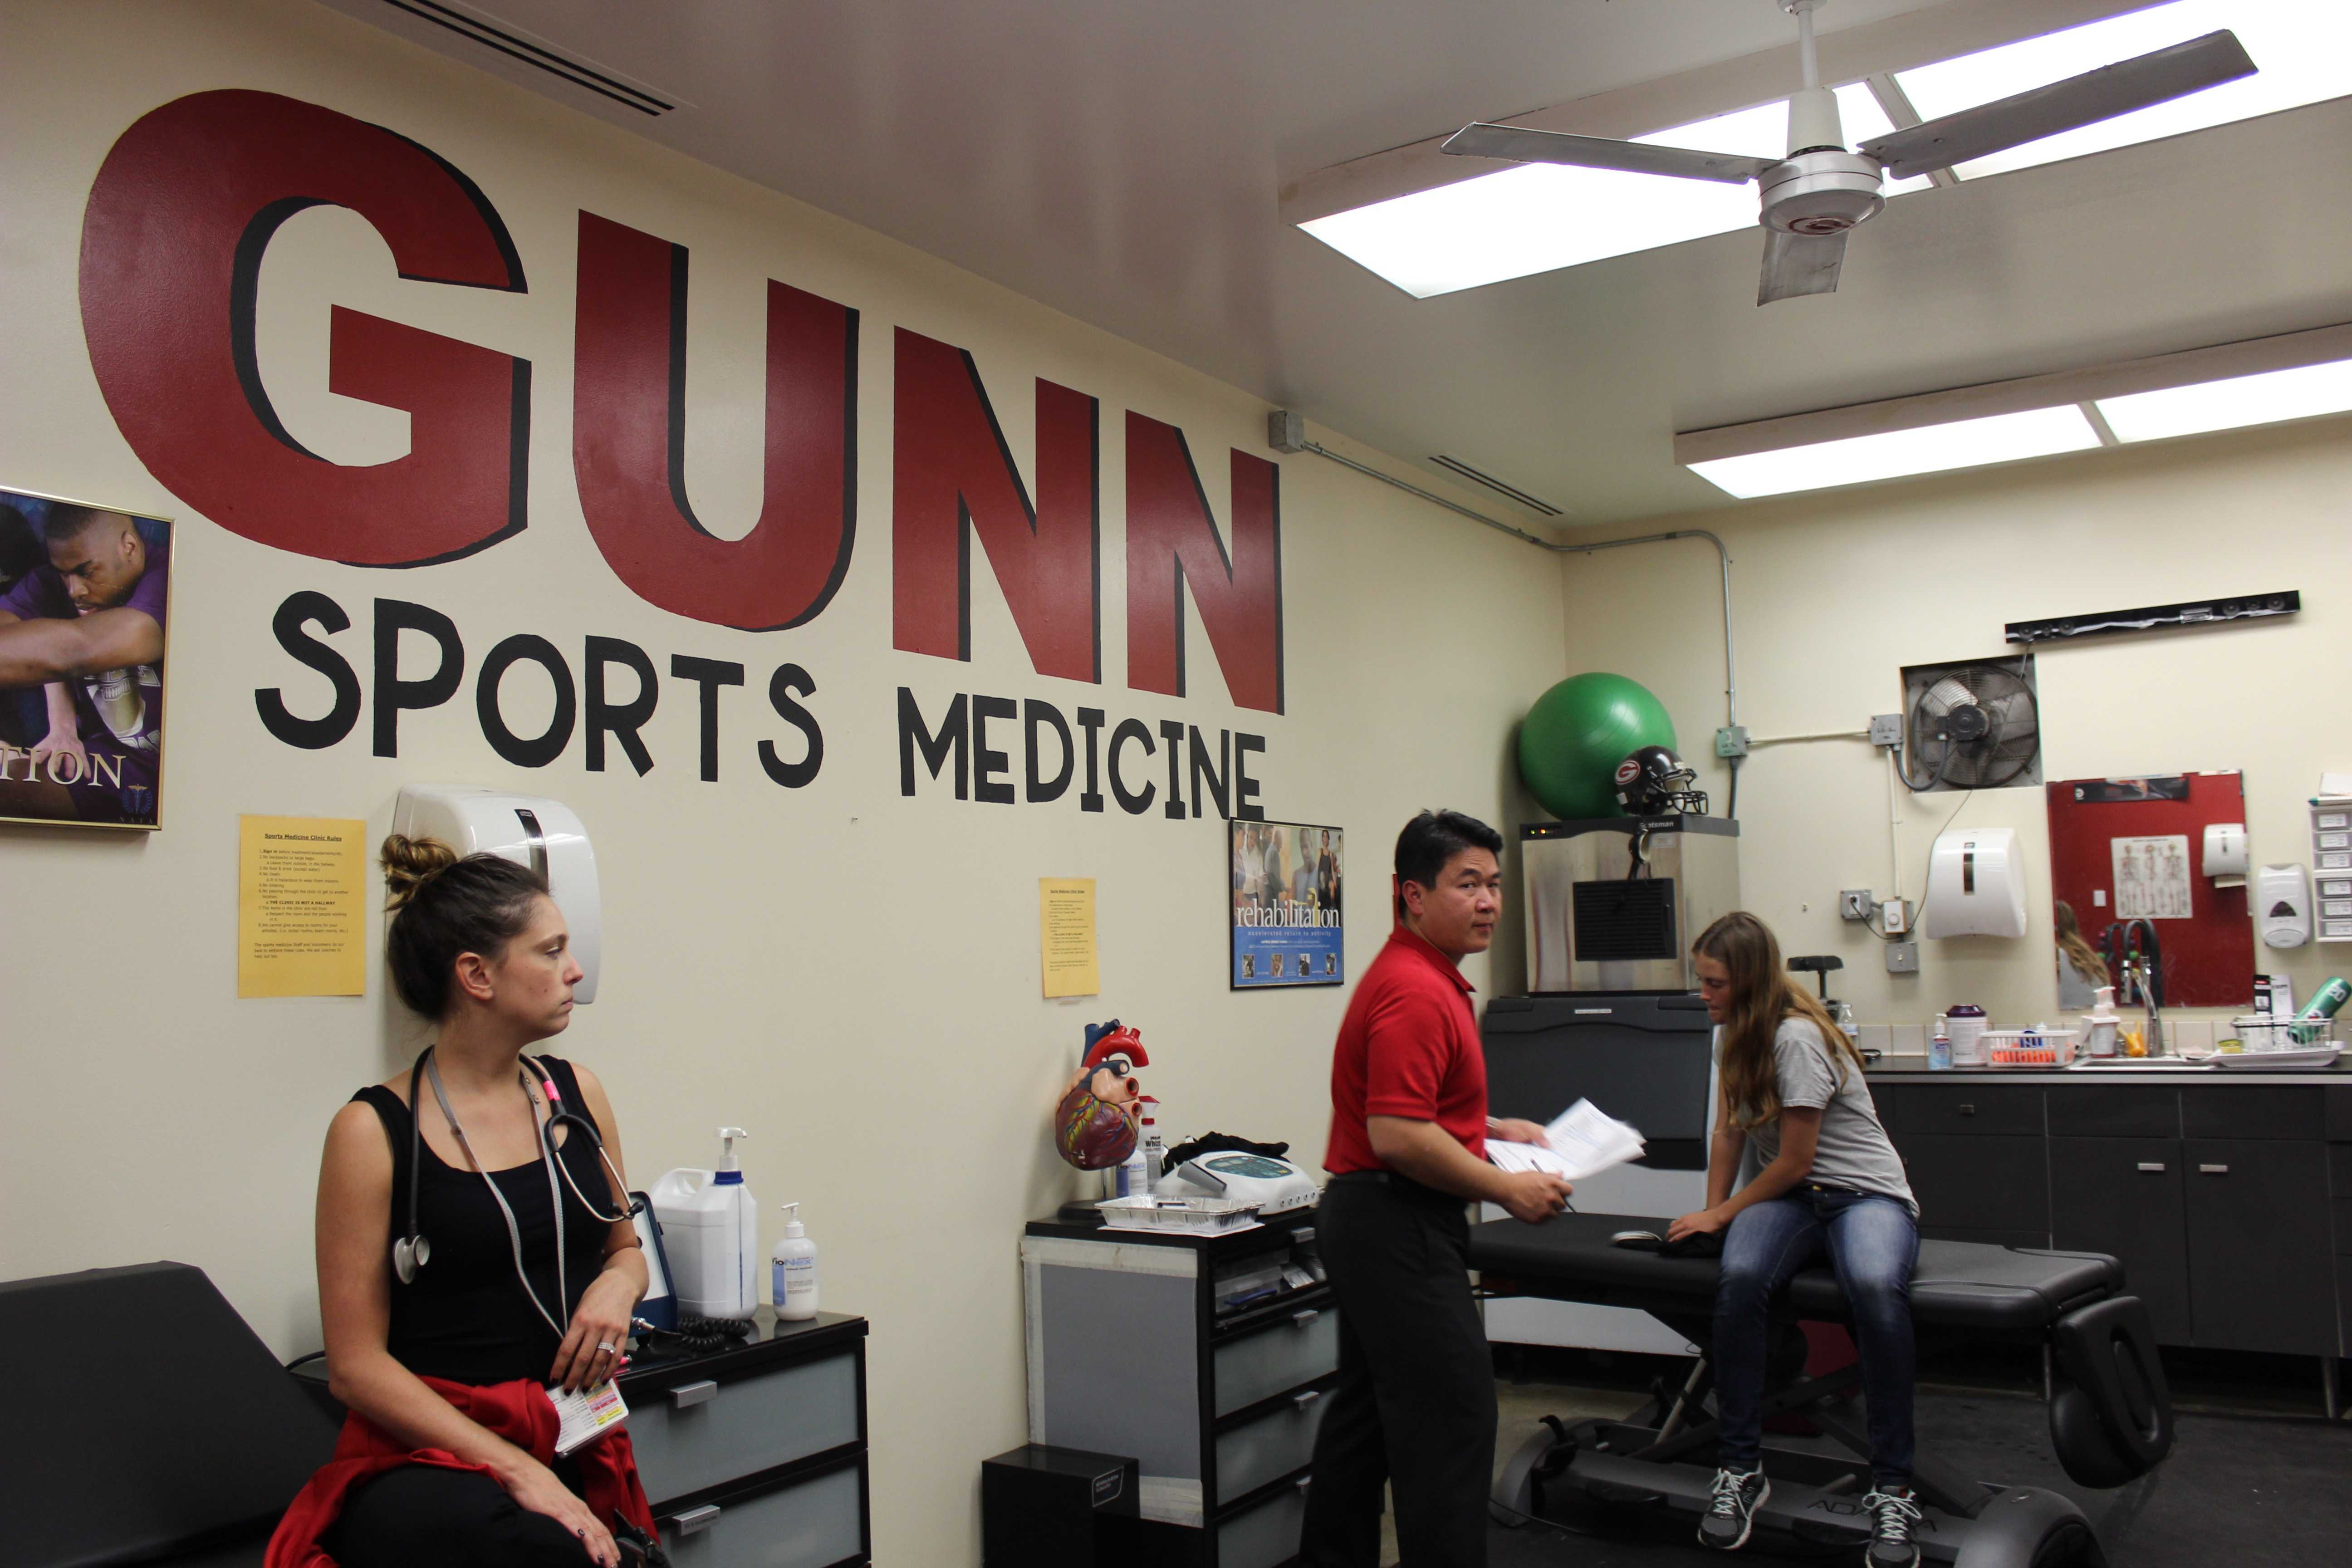 Stanford University teams up with Paly athletic trainers - The Paly